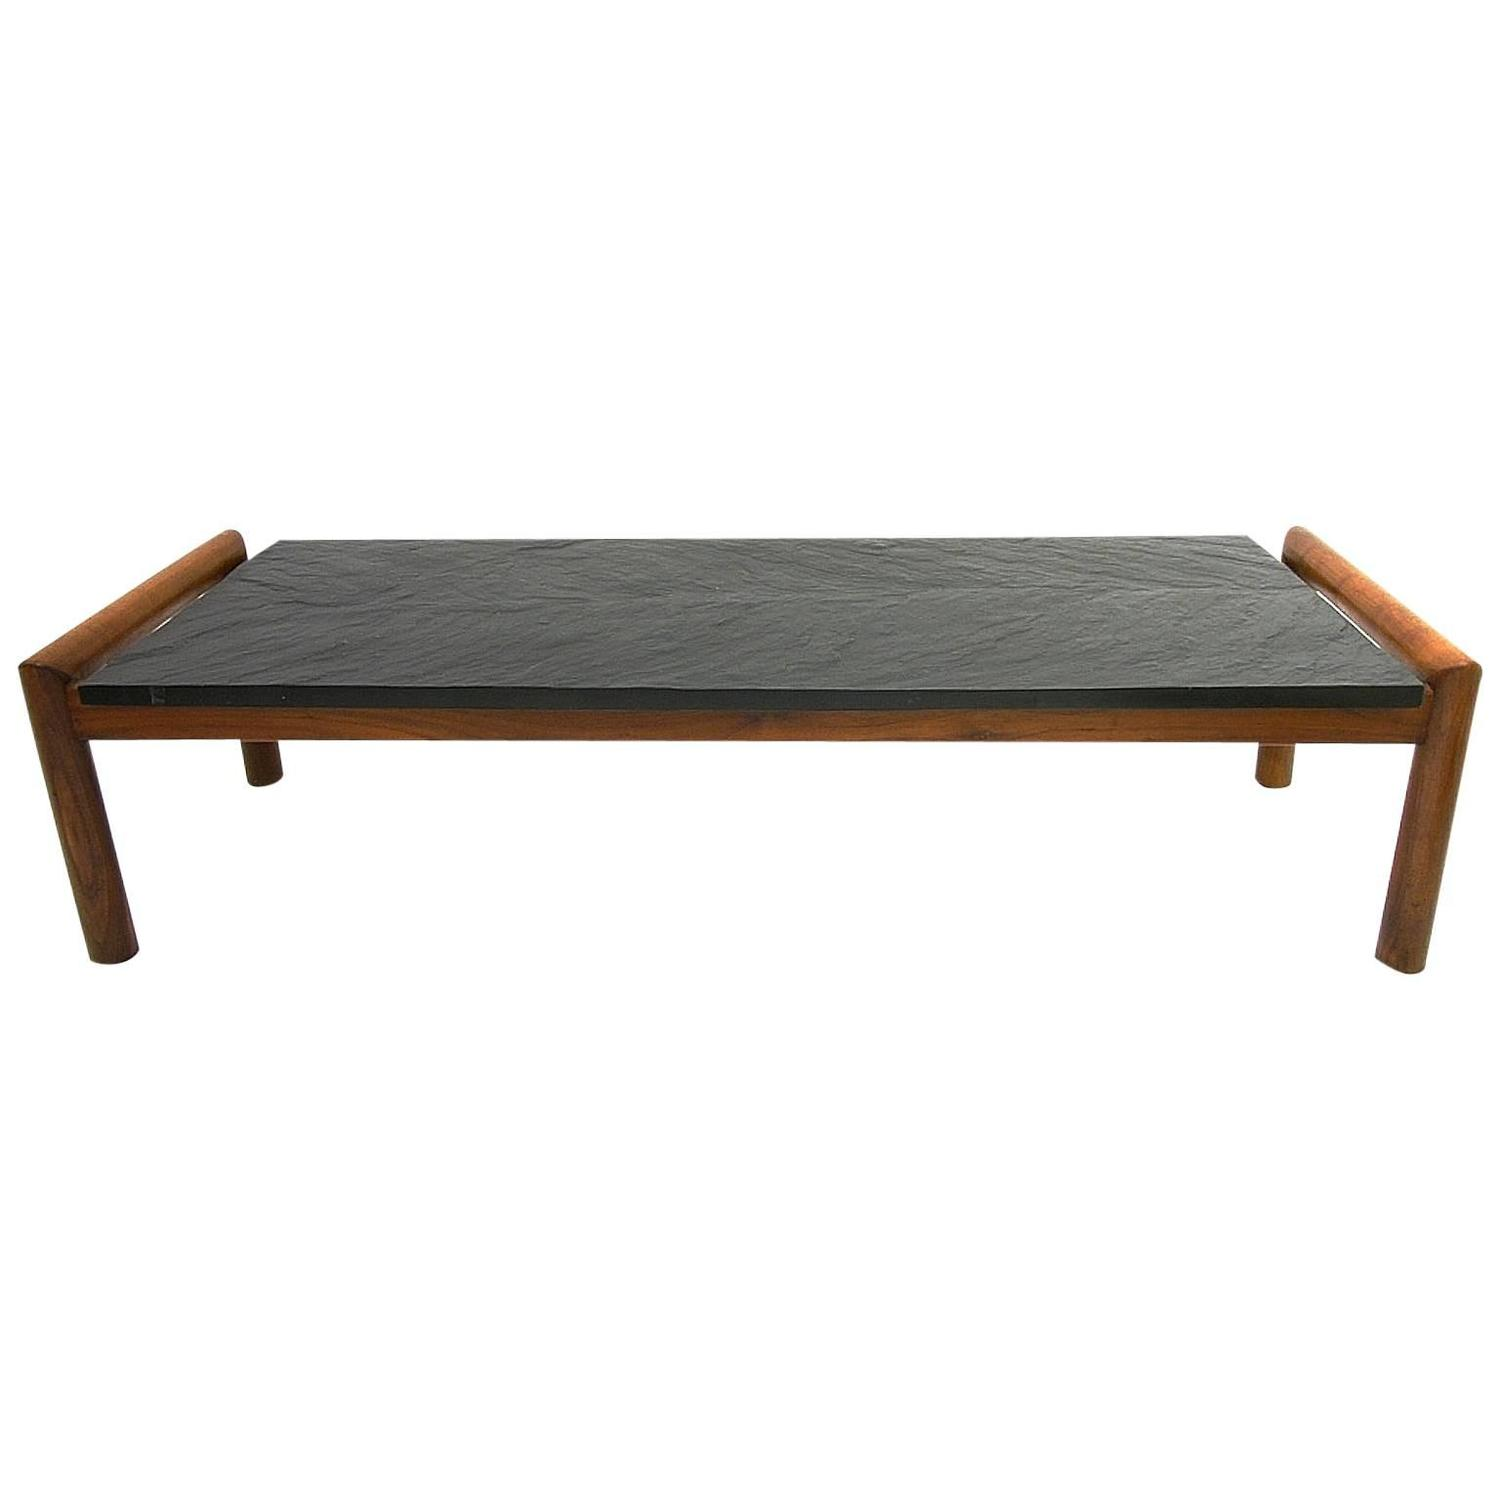 Slate Coffee and Cocktail Tables 98 For Sale at 1stdibs